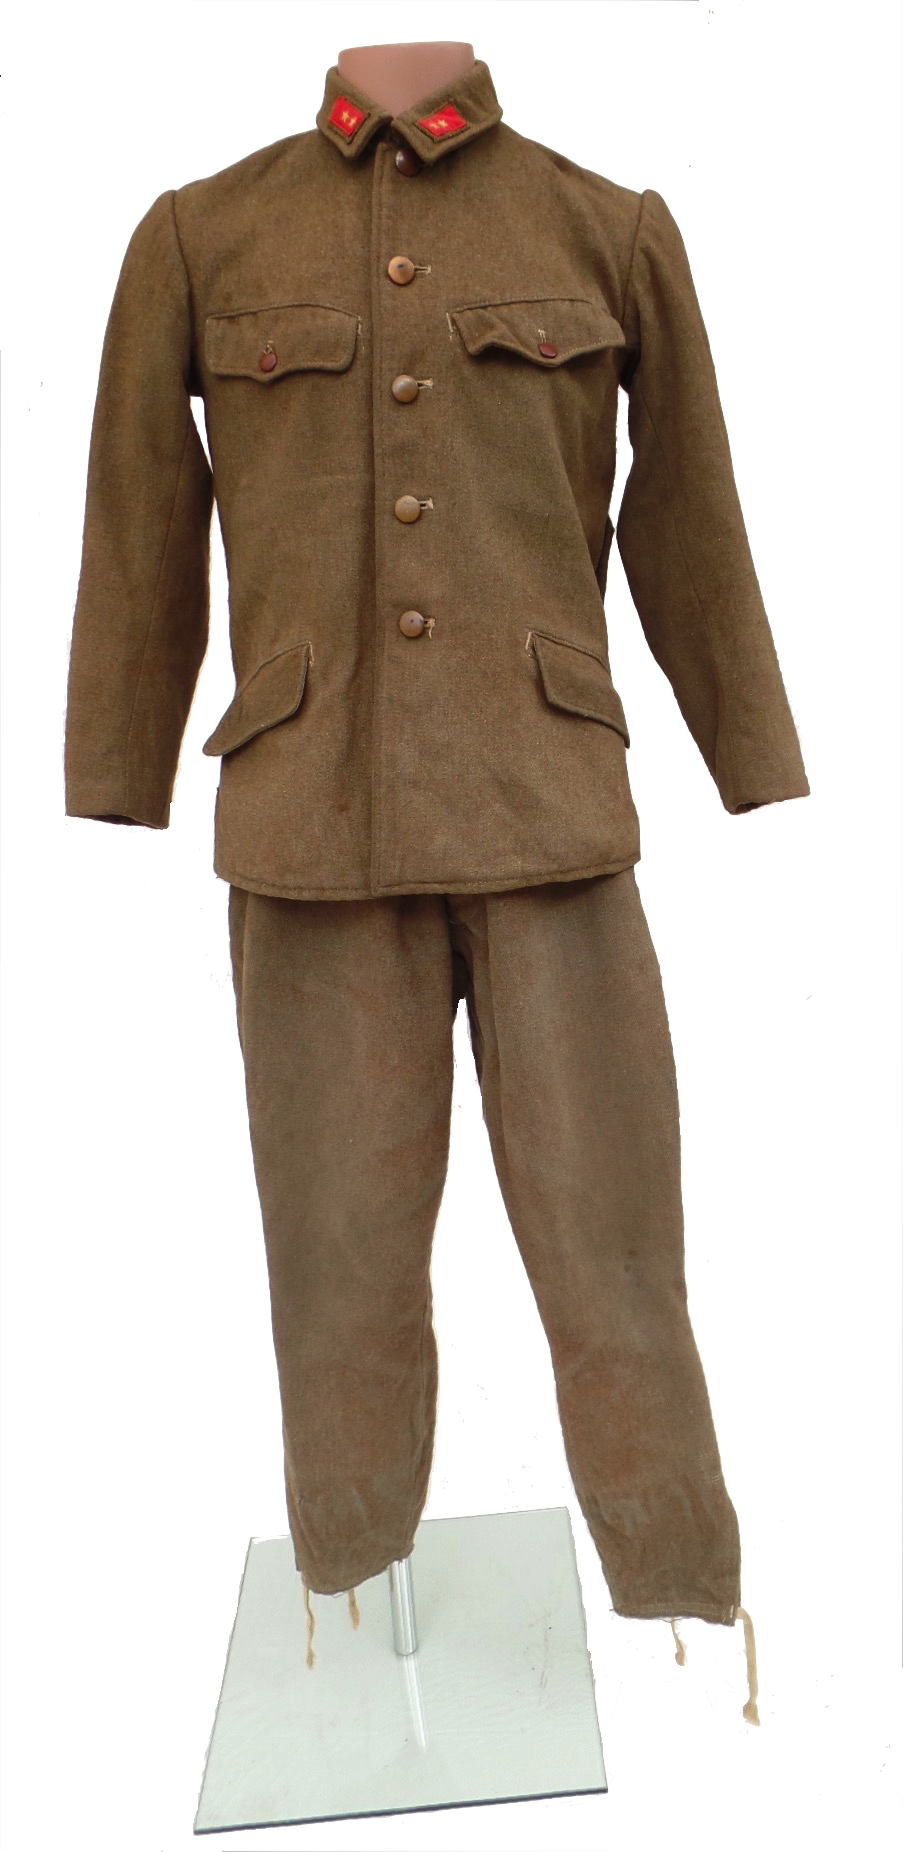 Ihram Kids For Sale Dubai: Military Torso Half Body Tailor Form Ww2 Ww1 Manikin US